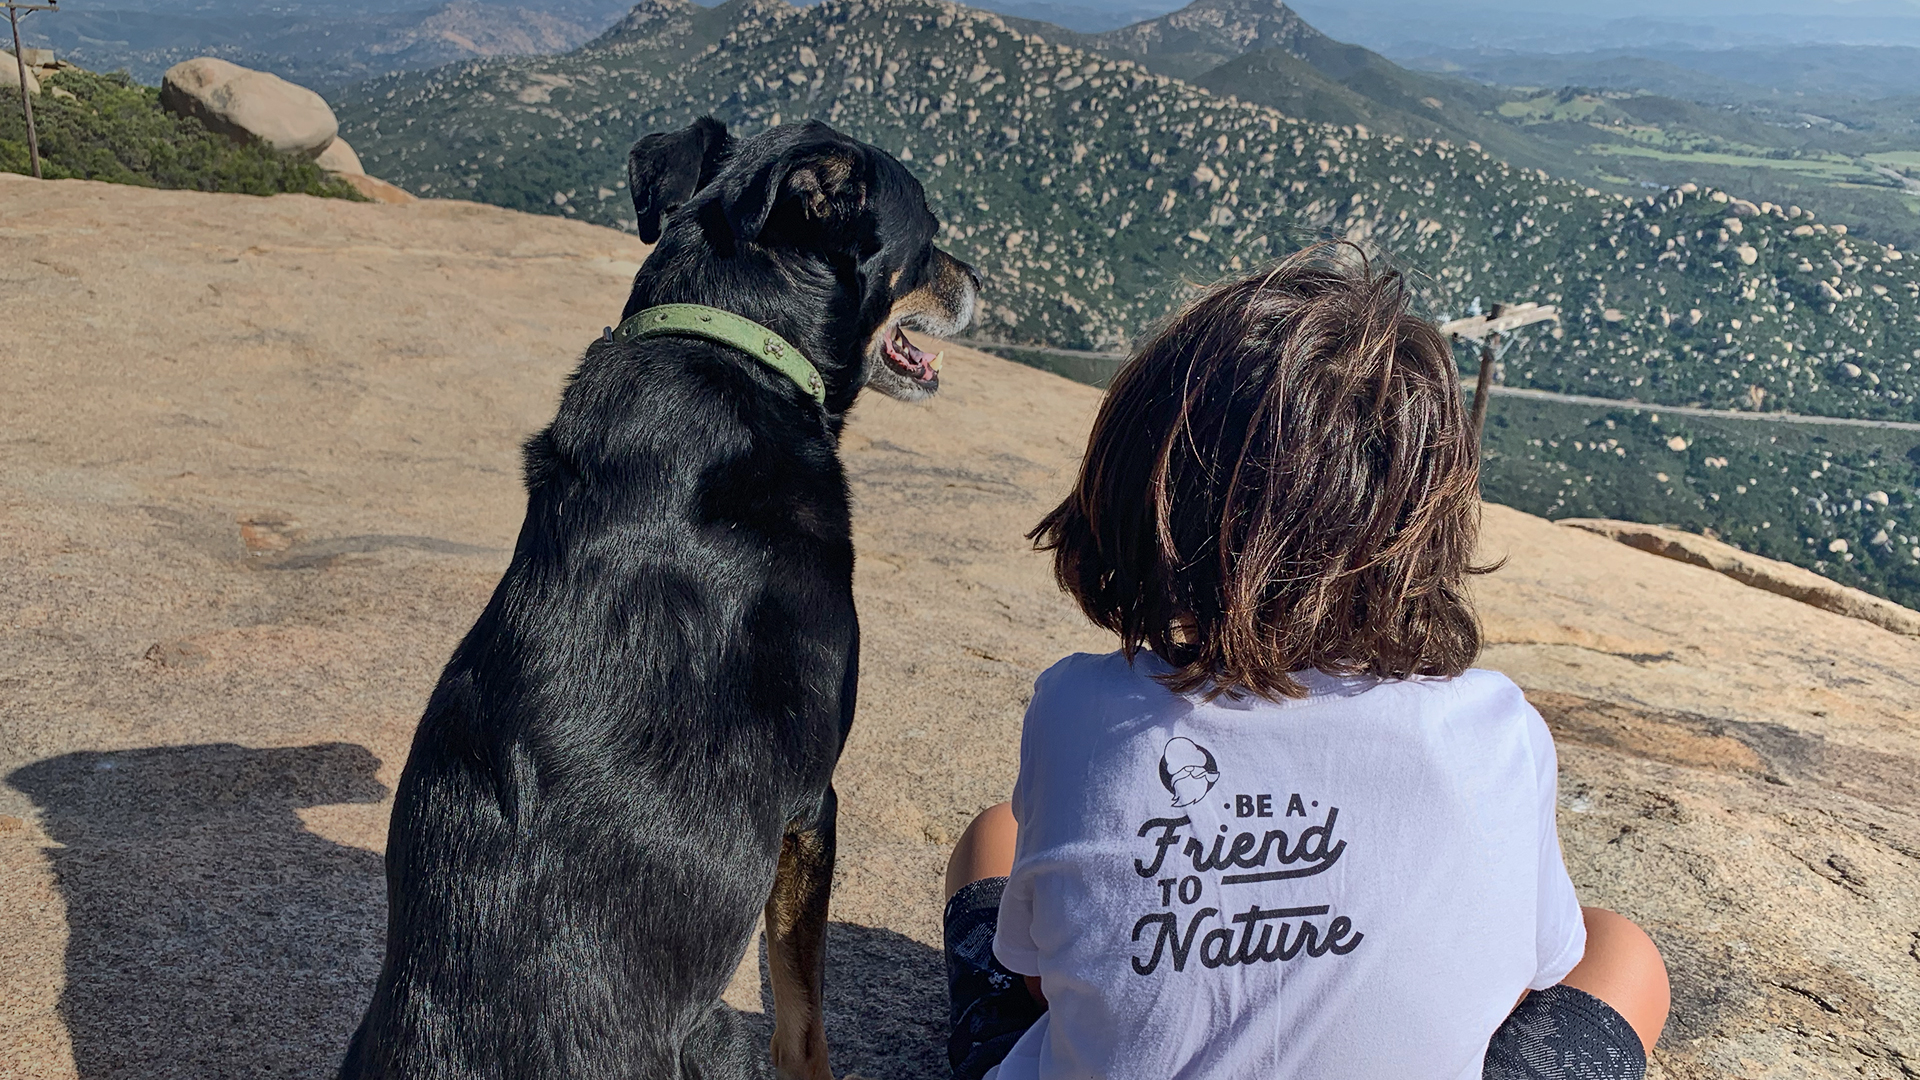 Friend to Nature | Camp Bum